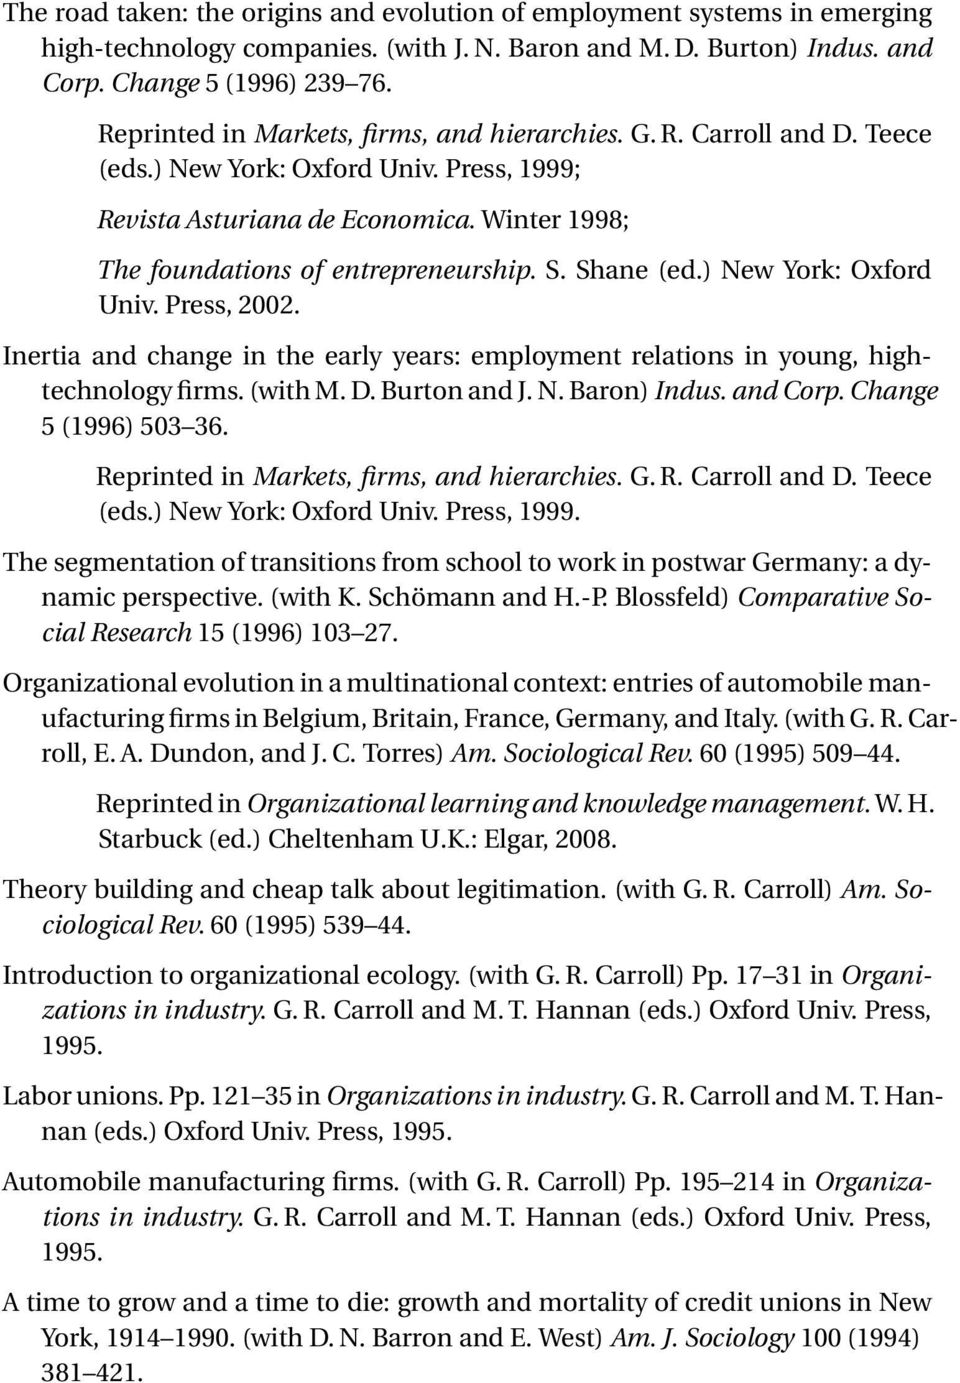 Shane (ed.) New York: Oxford Univ. Press, 2002. Inertia and change in the early years: employment relations in young, hightechnology firms. (with M. D. Burton and J. N. Baron) Indus. and Corp.